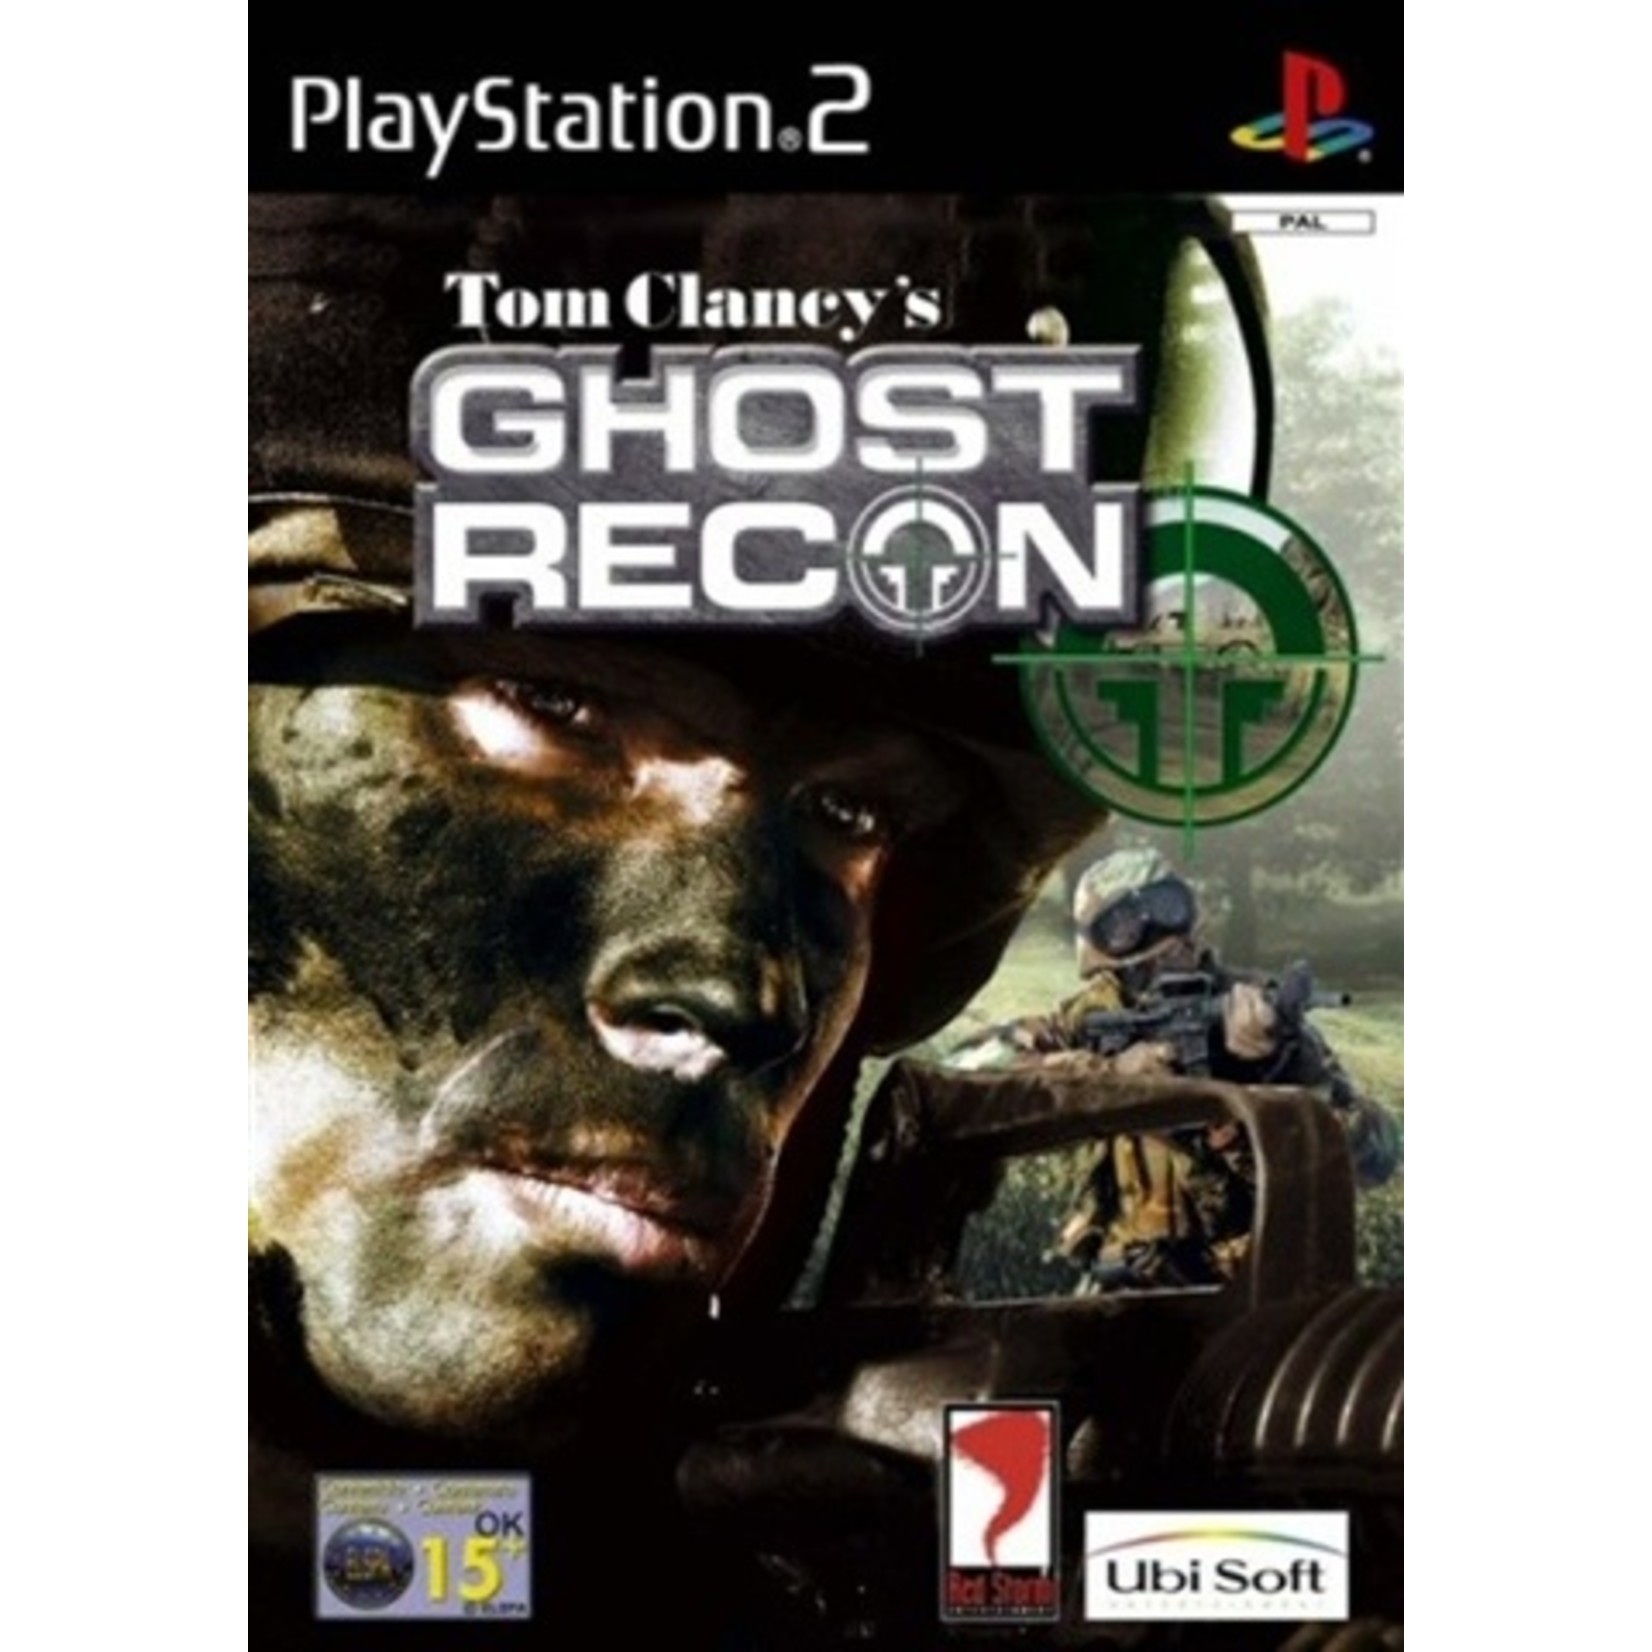 Tom Clancy's - Ghost Recon